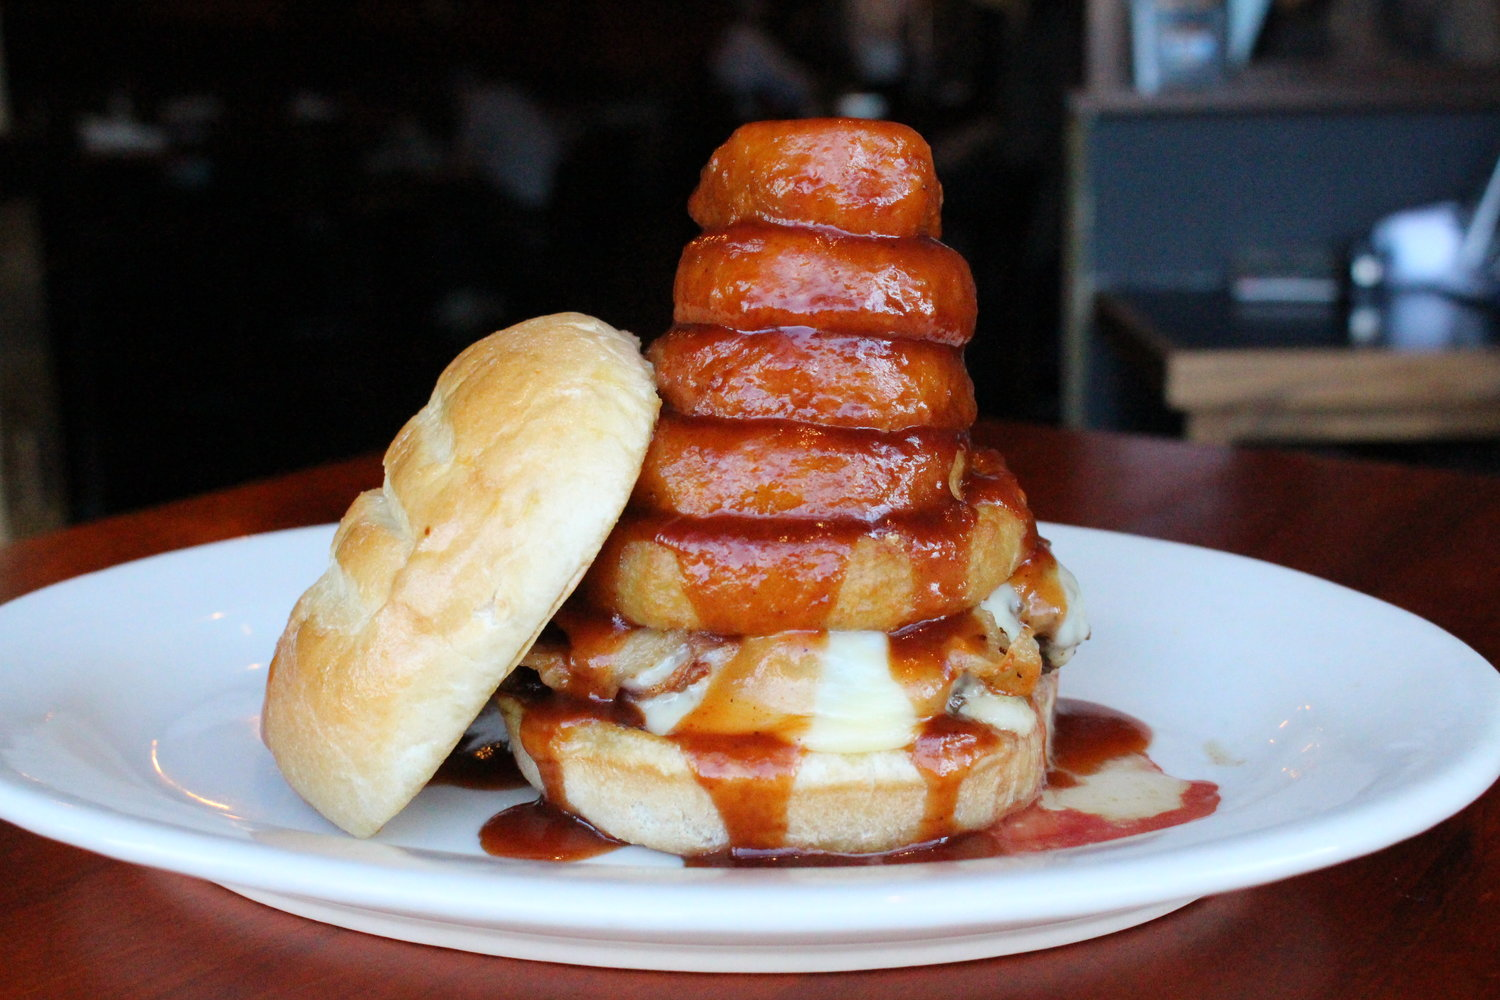 A burger sits on a white plate, its top bun leaning up against it. It's topped with a stack of five thick onion rings that are drenched in barbecue sauce.